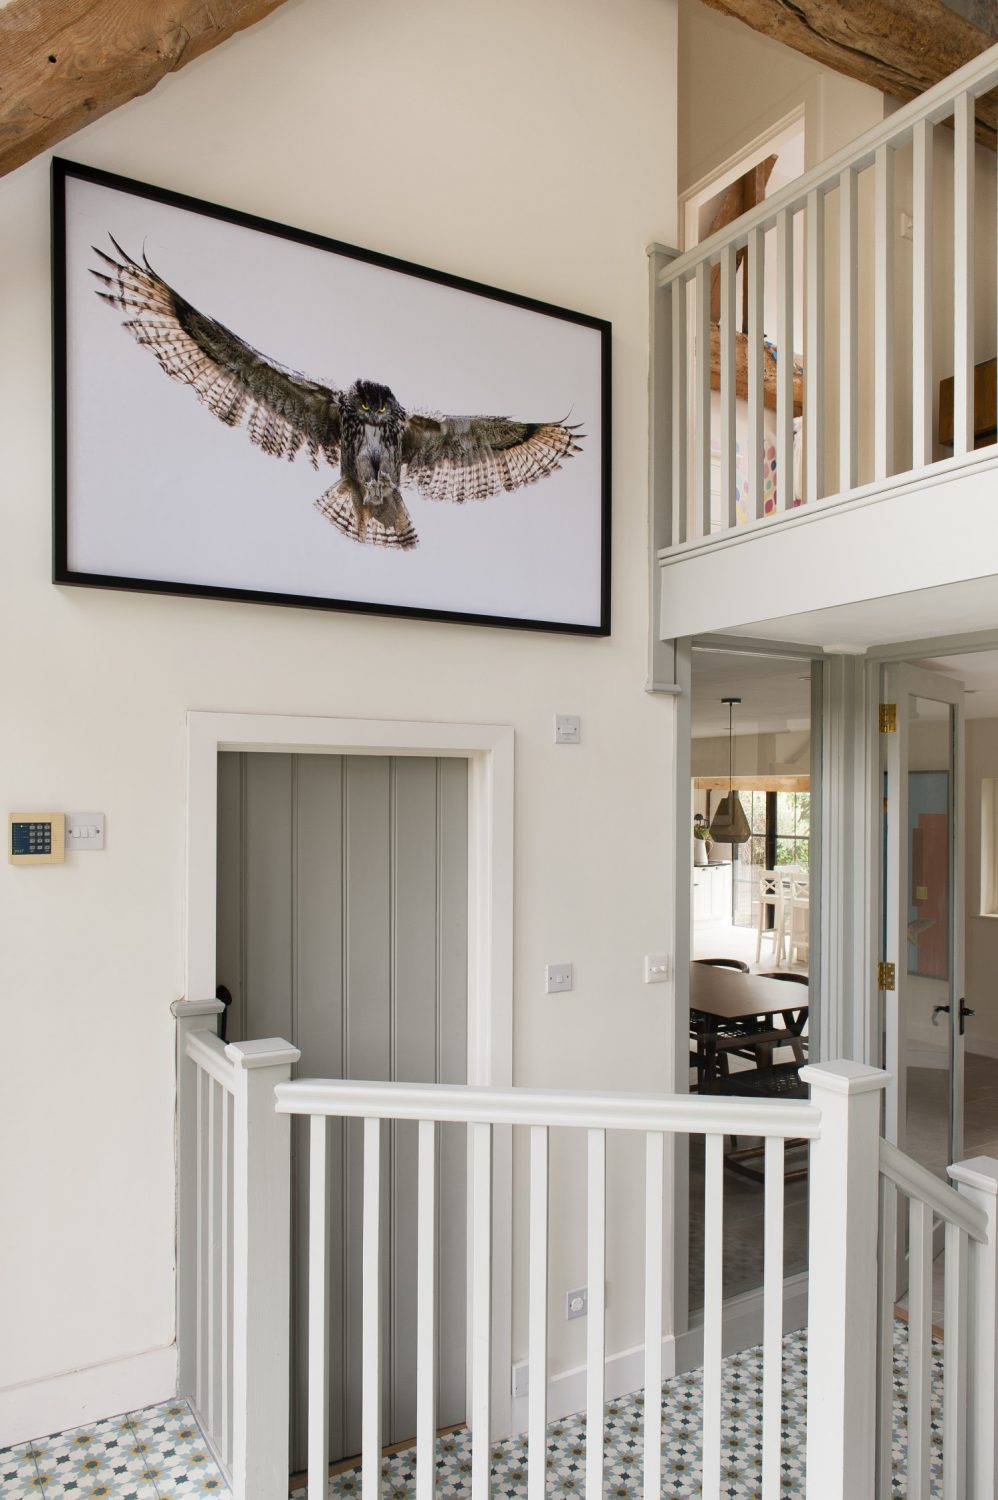 A large spread-winged owl, digital artwork created by Richard, looms over the galleried entrance hall